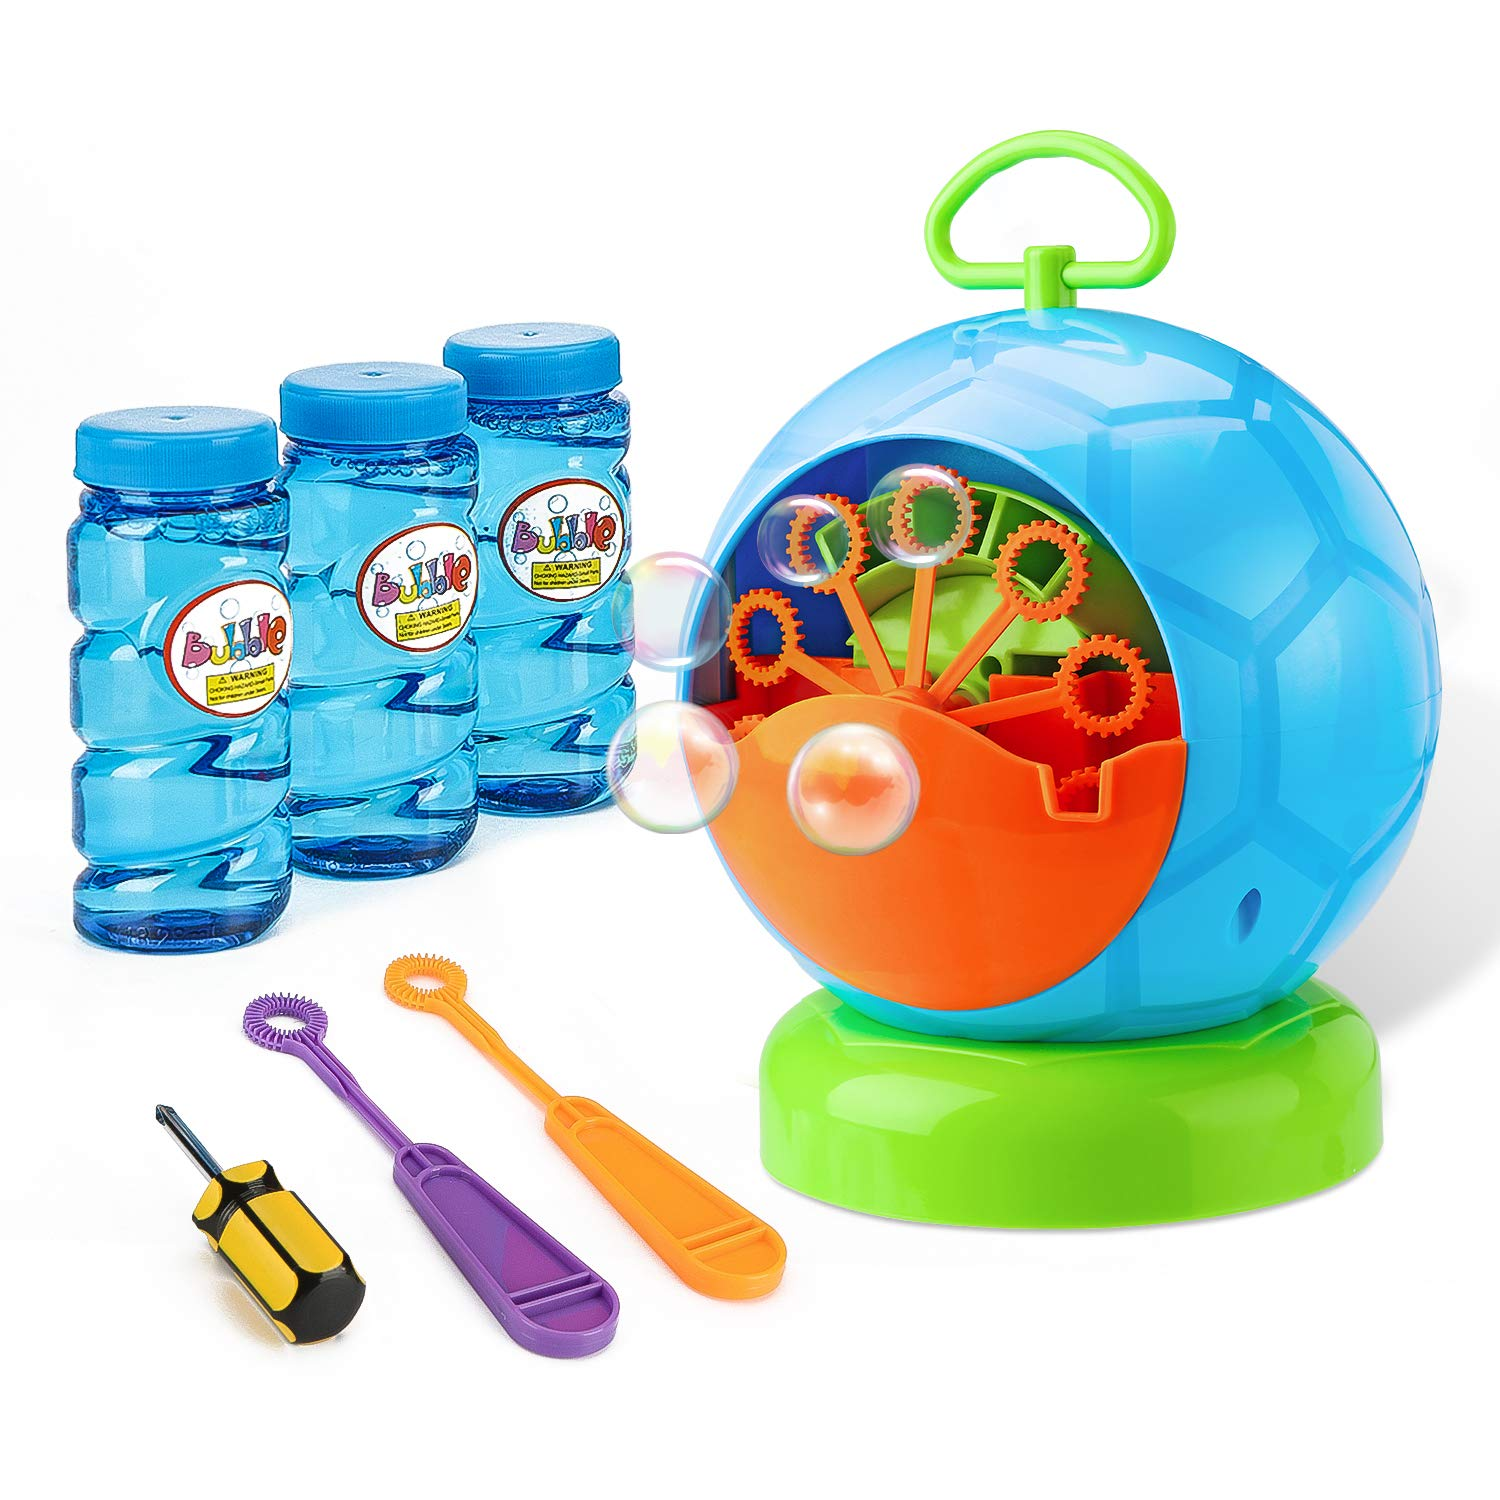 Fansteck Bubble Machine, Durable and Portable Automatic 800+ Bubble Machine for Kids, with 3 Bottles of Bubble Solution and 2 Extra Manual Bubble Wands, Easy to Use for Christmas, Parties, Wedding